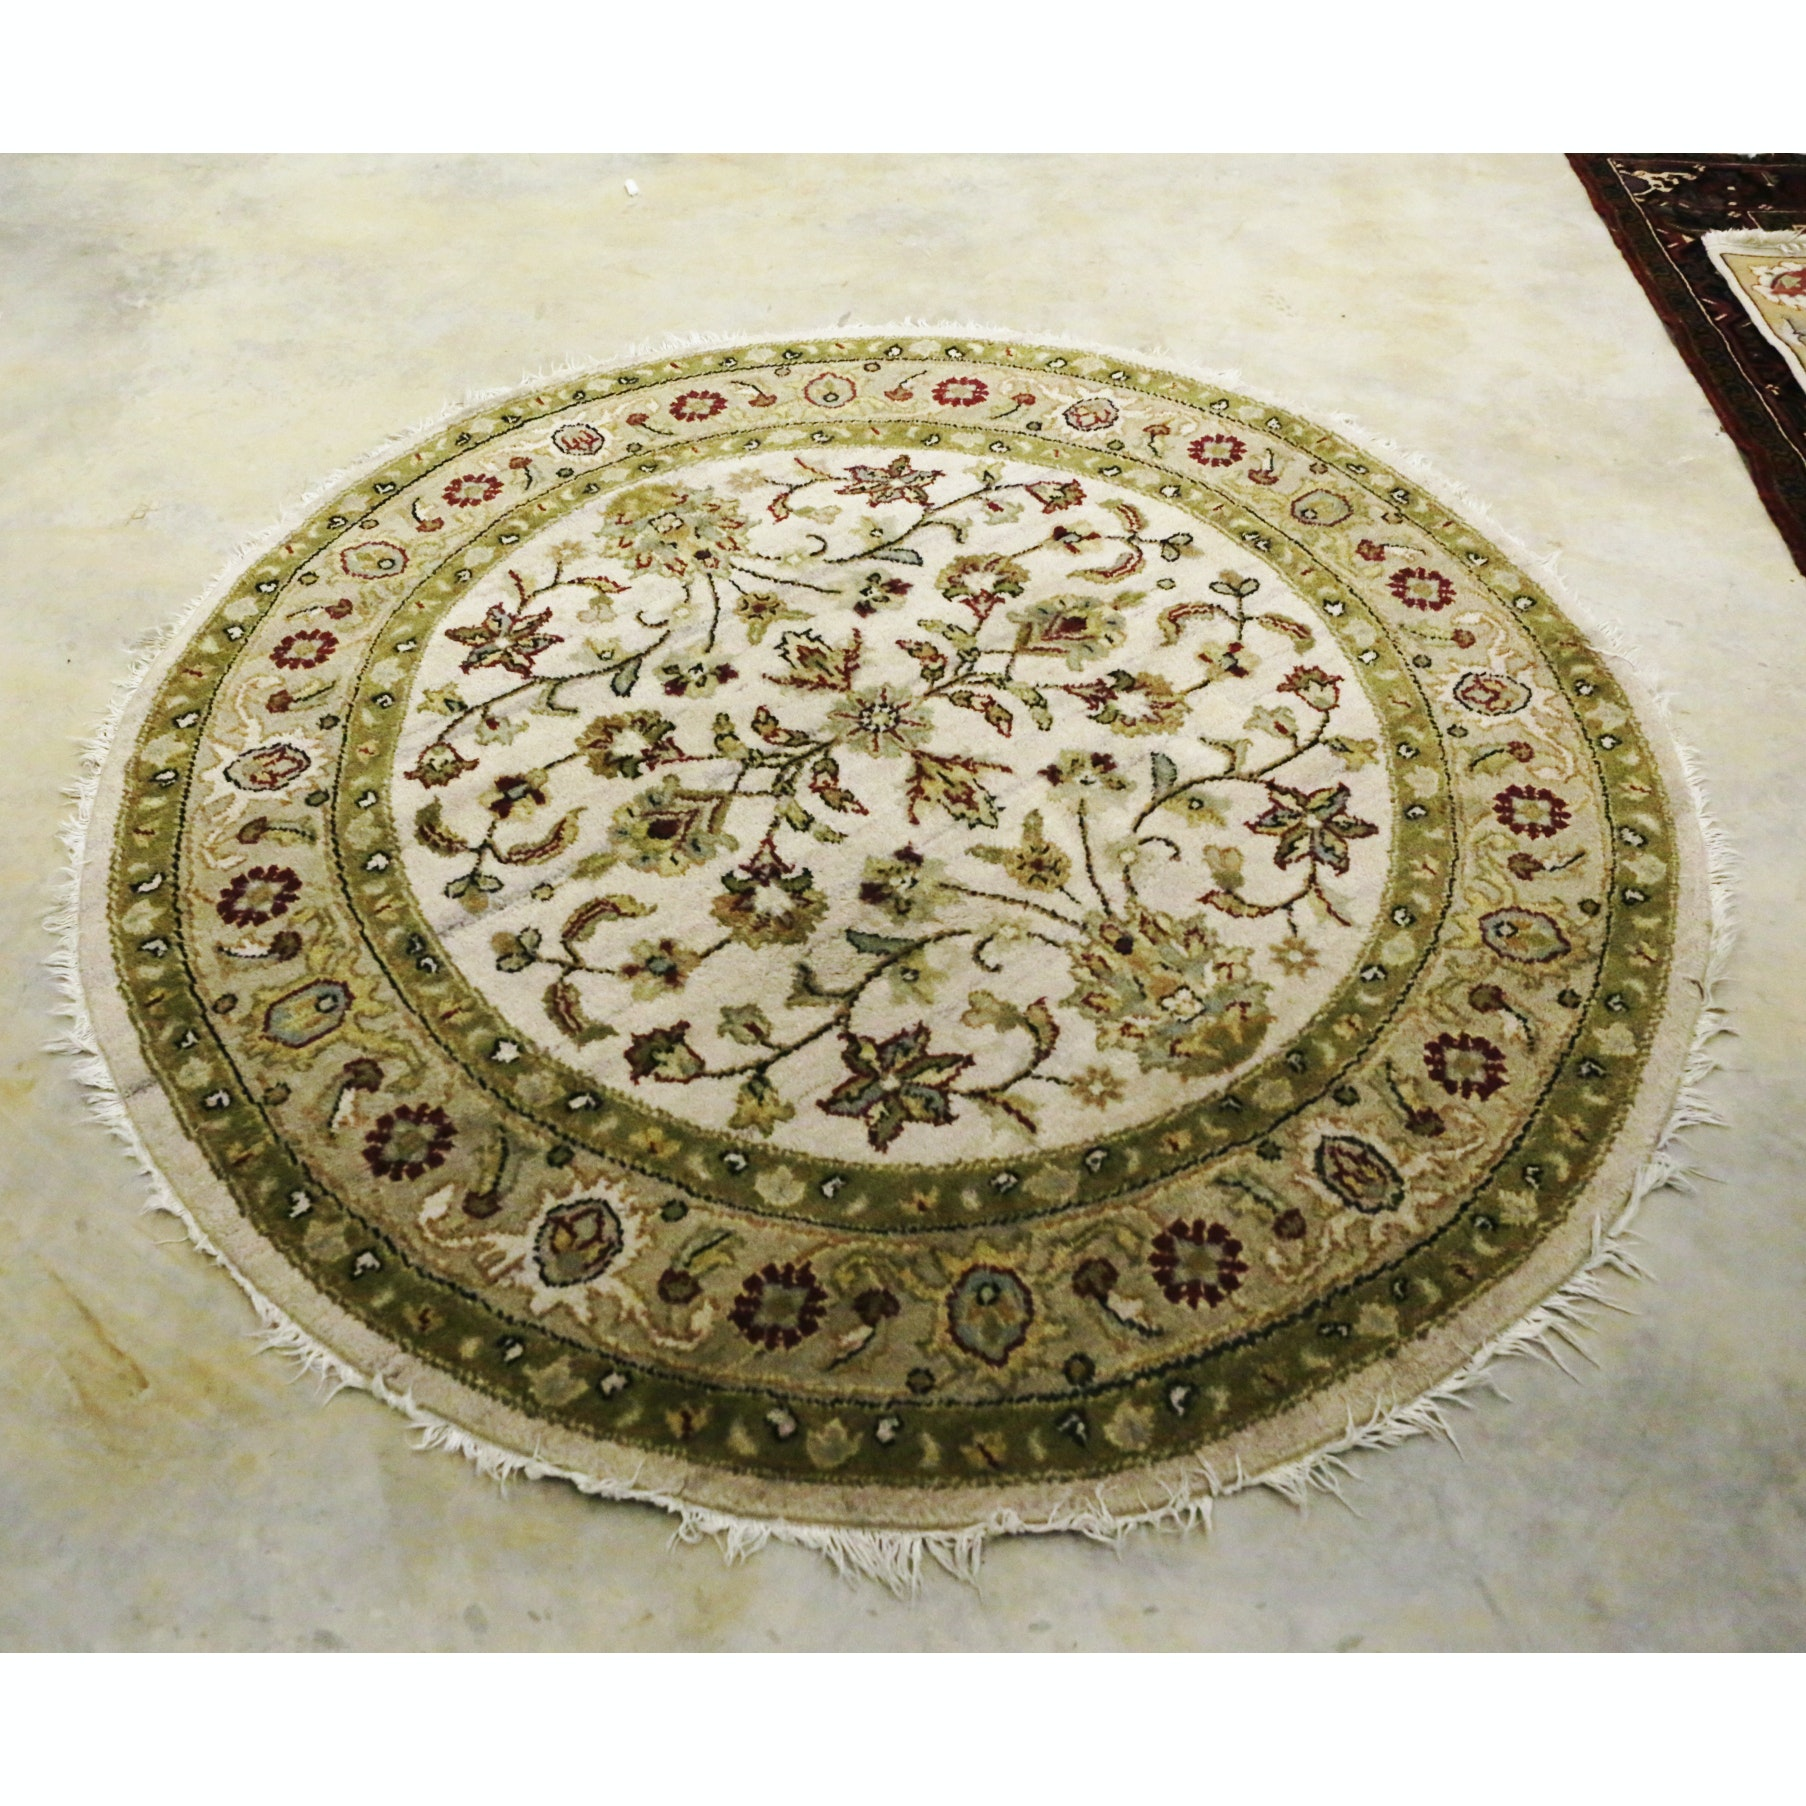 Hand-Knotted Indo-Persian Round Wool Area Rug